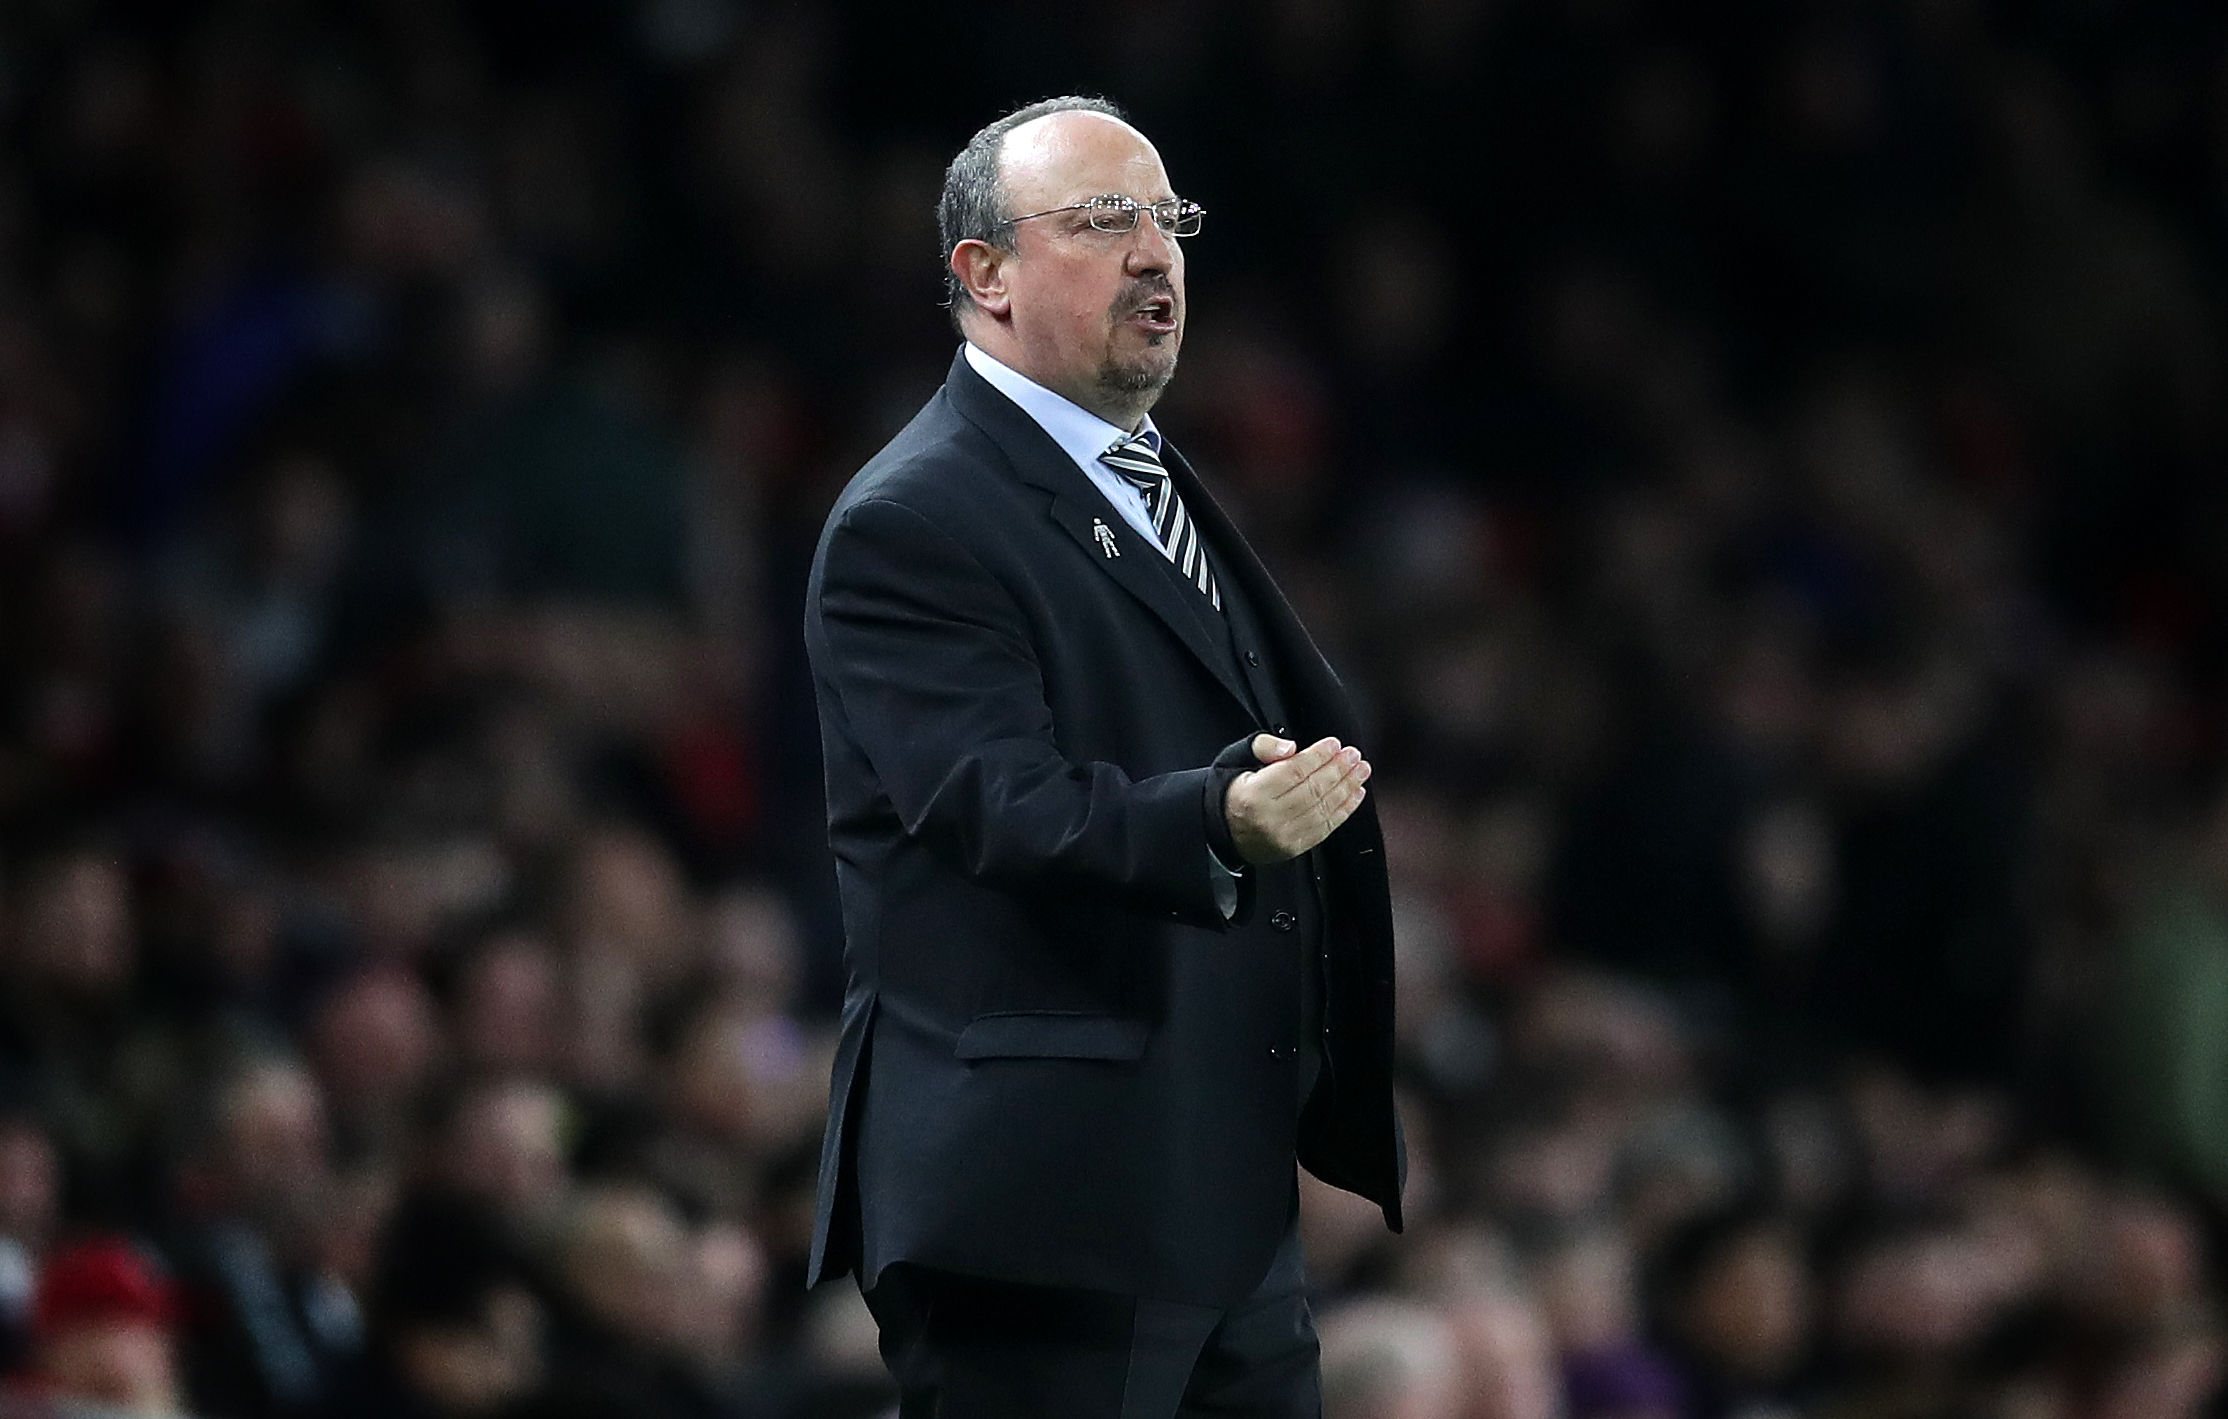 Rafael Benitez's current Newcastle contract is due to expire on June 30